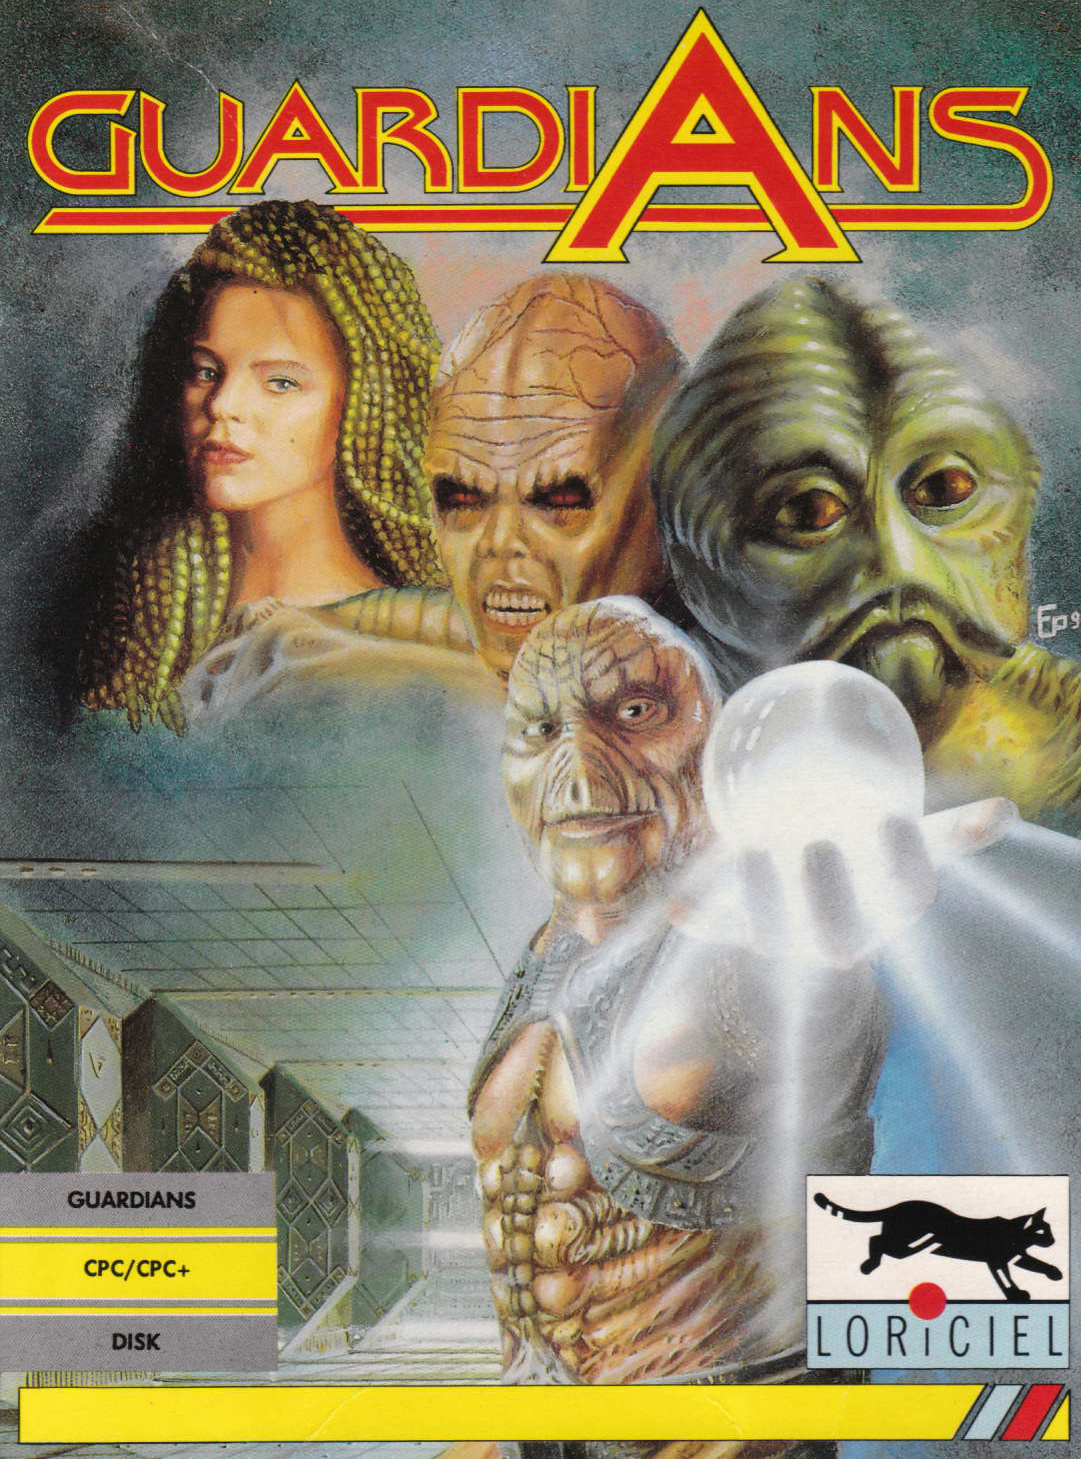 screenshot of the Amstrad CPC game Guardians by GameBase CPC